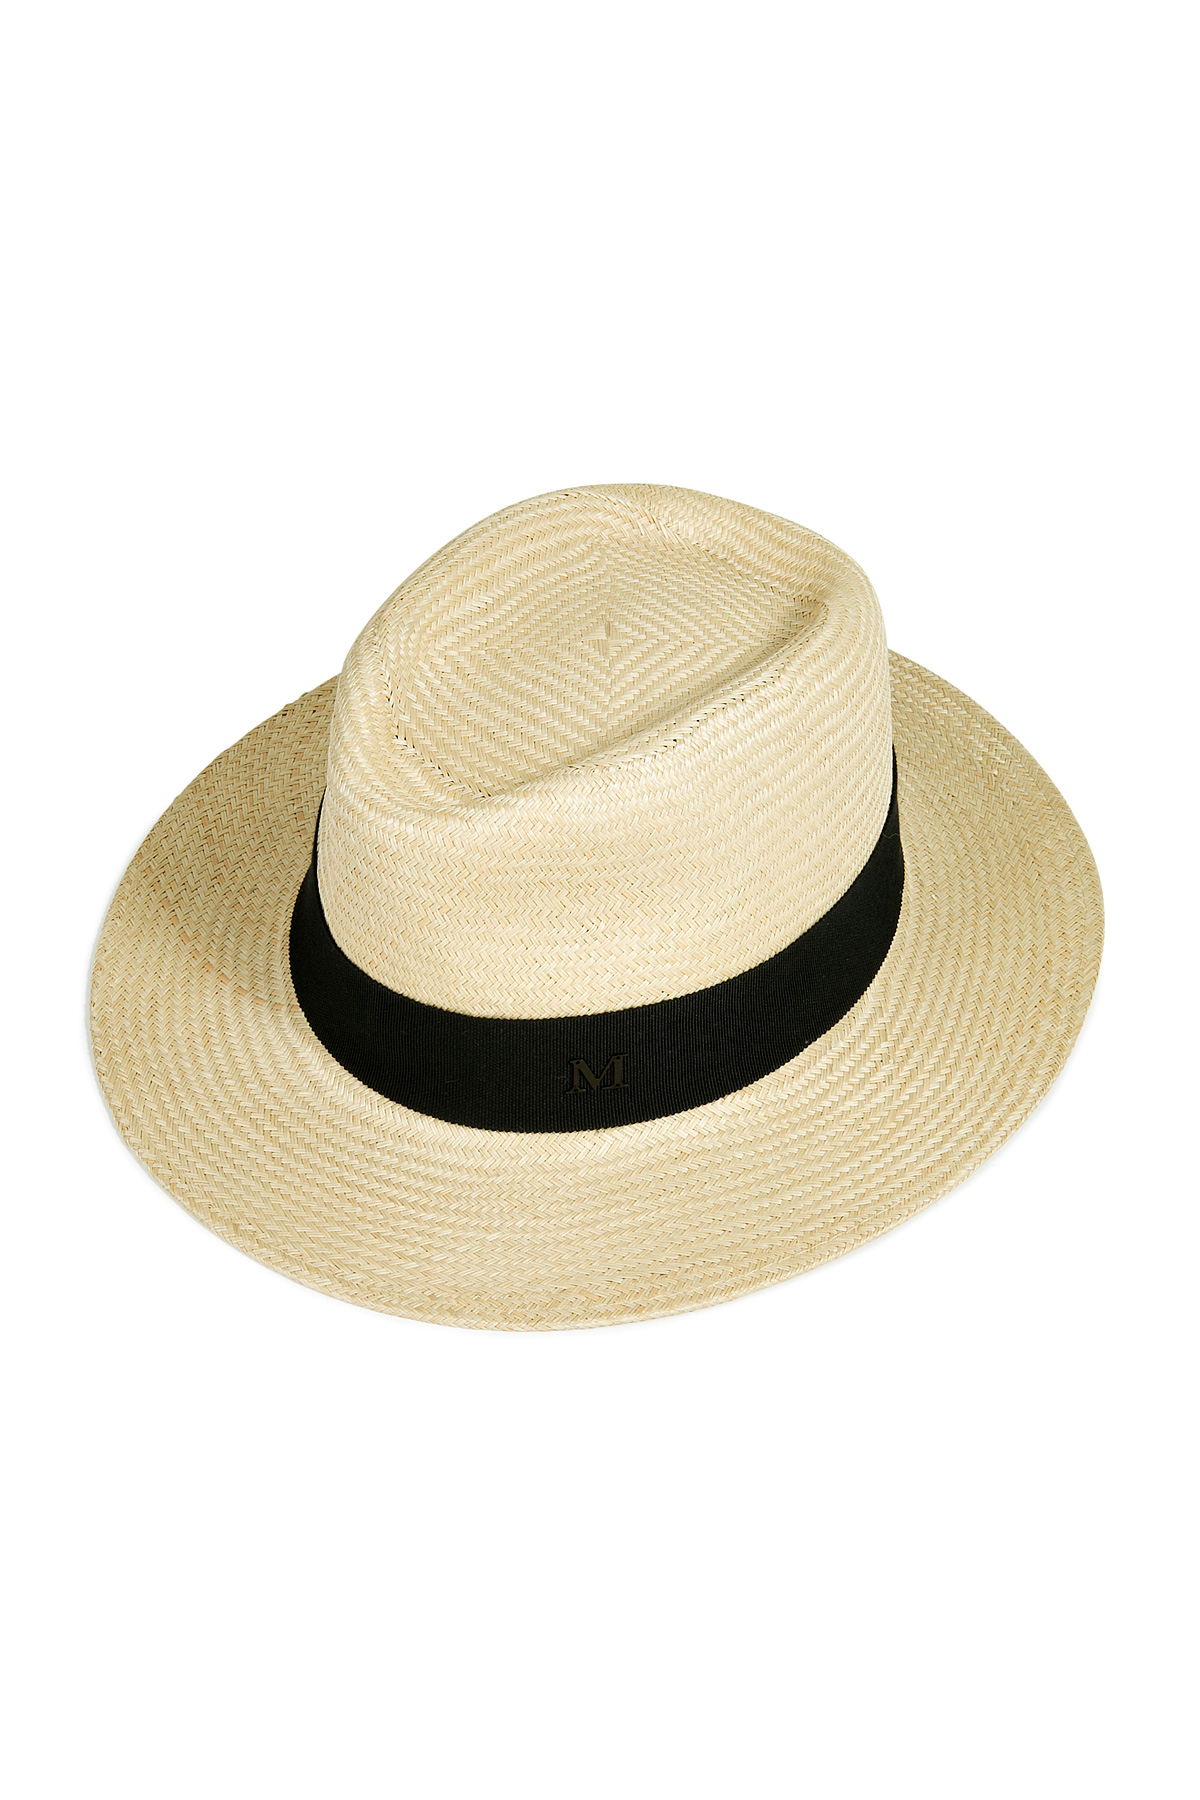 70bd9d32ad46f Maison Michel Andre Large Panama Hat in Natural - Lyst